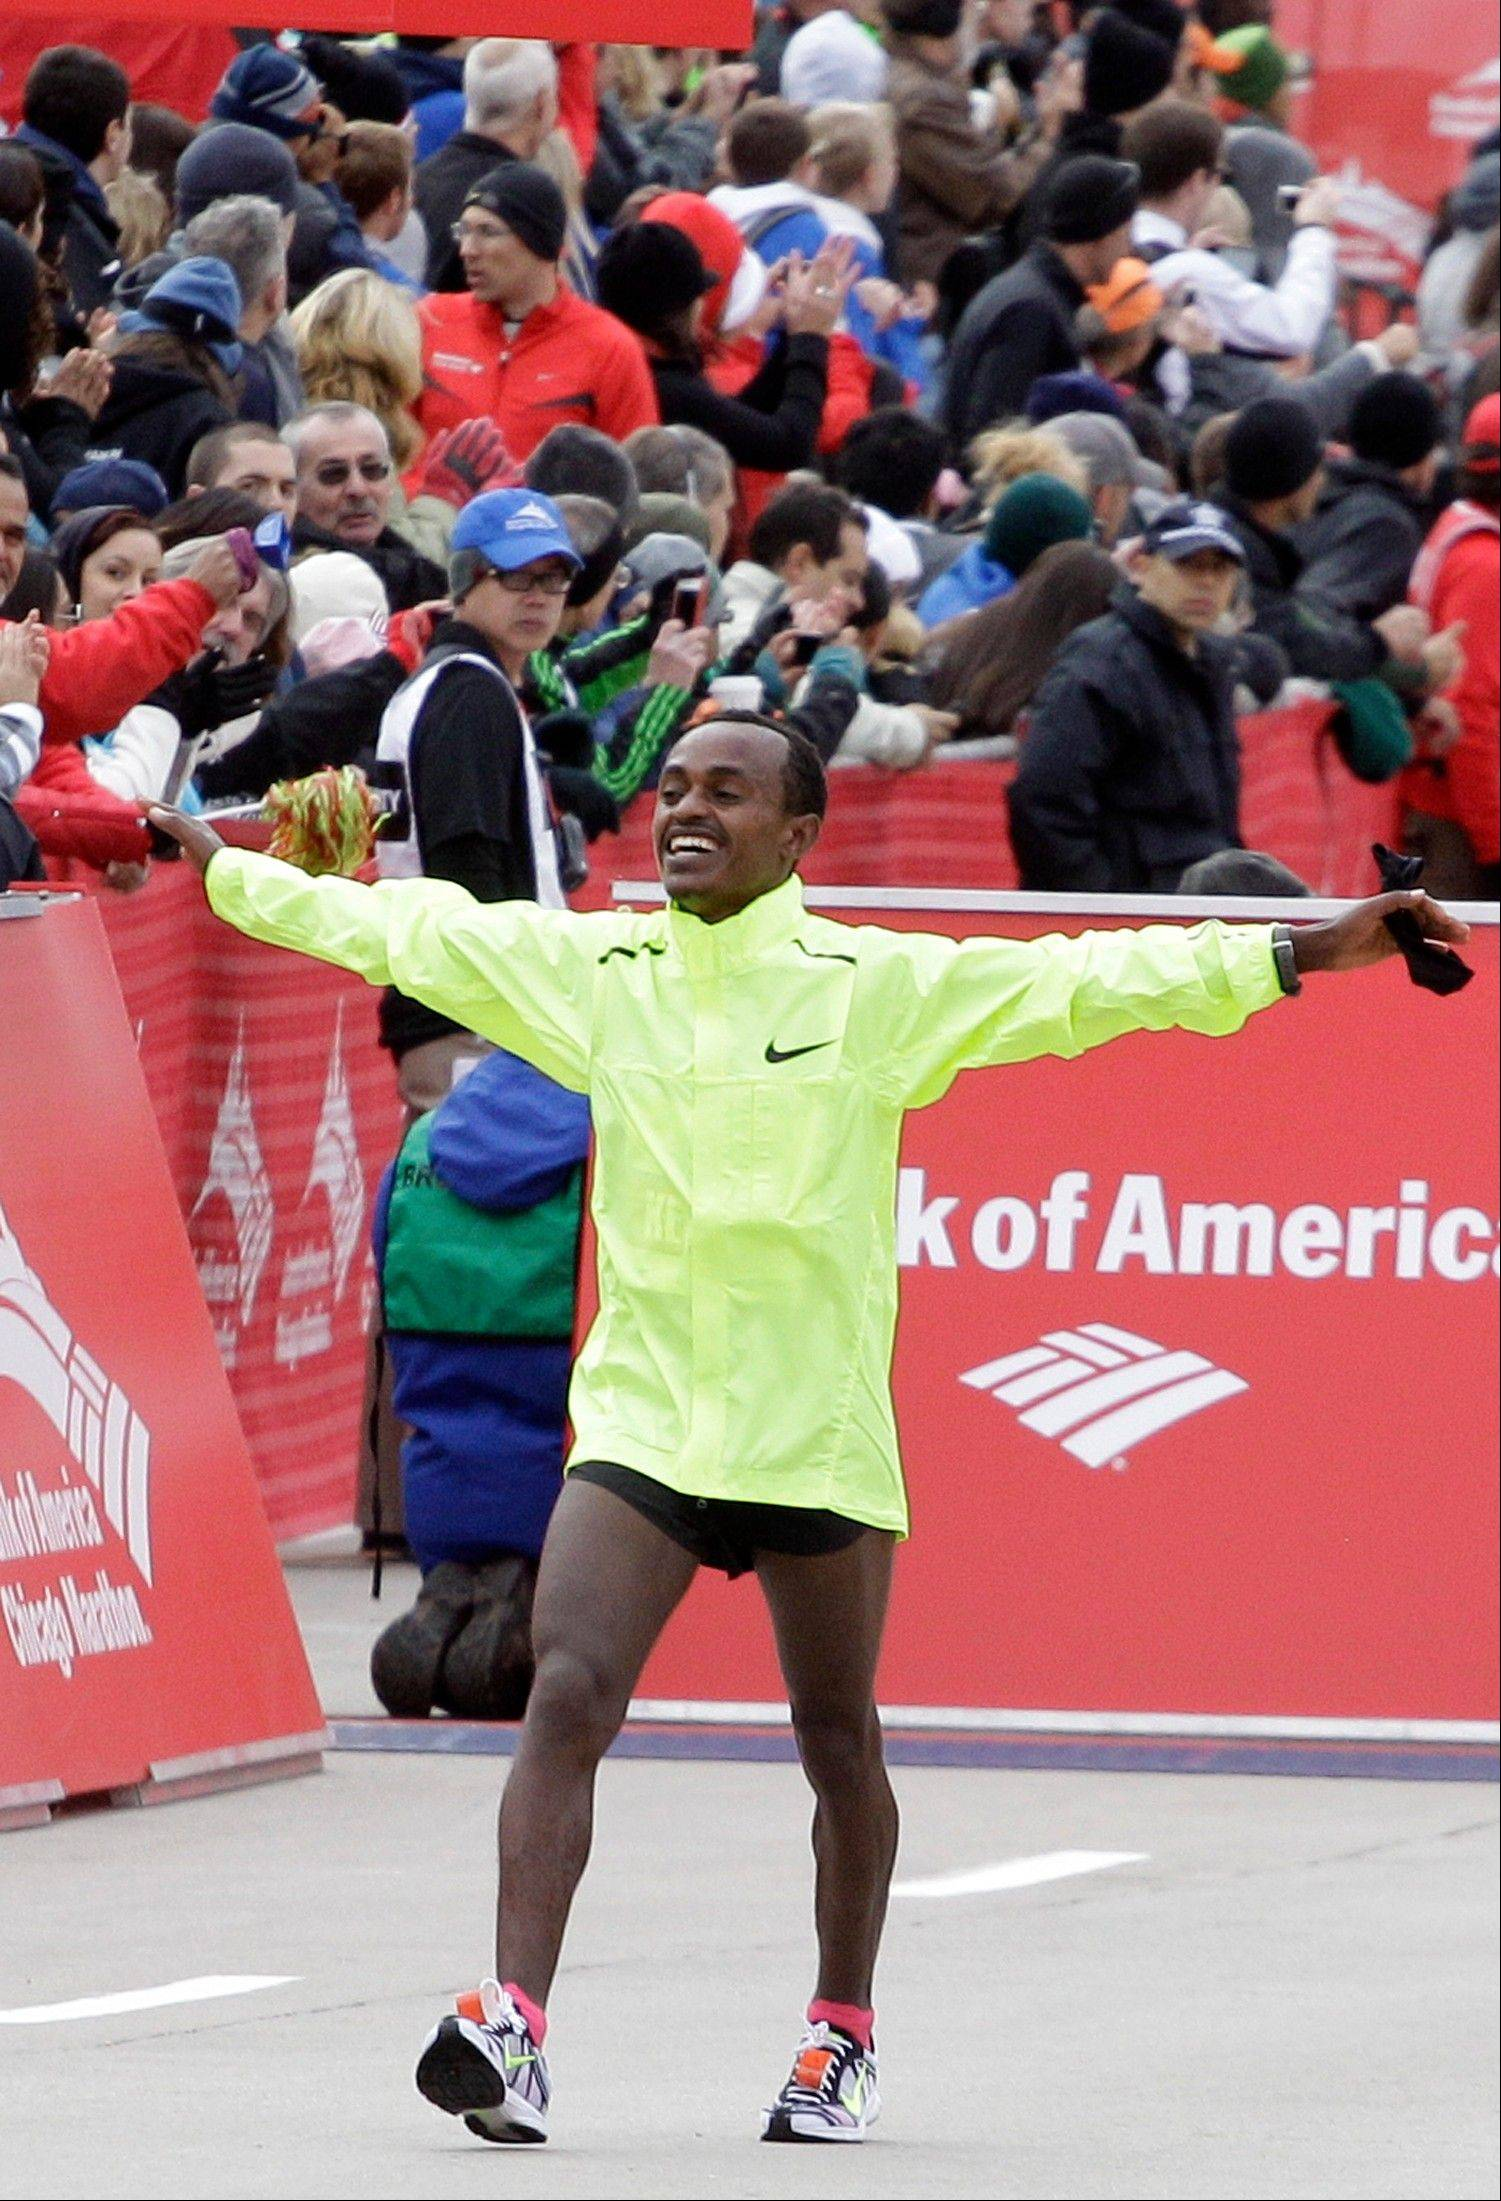 Tsegaye Kebede of Ethiopia, celebrates after winning the 2012 Chicago Marathon Sunday, Oct. 7, 2012.